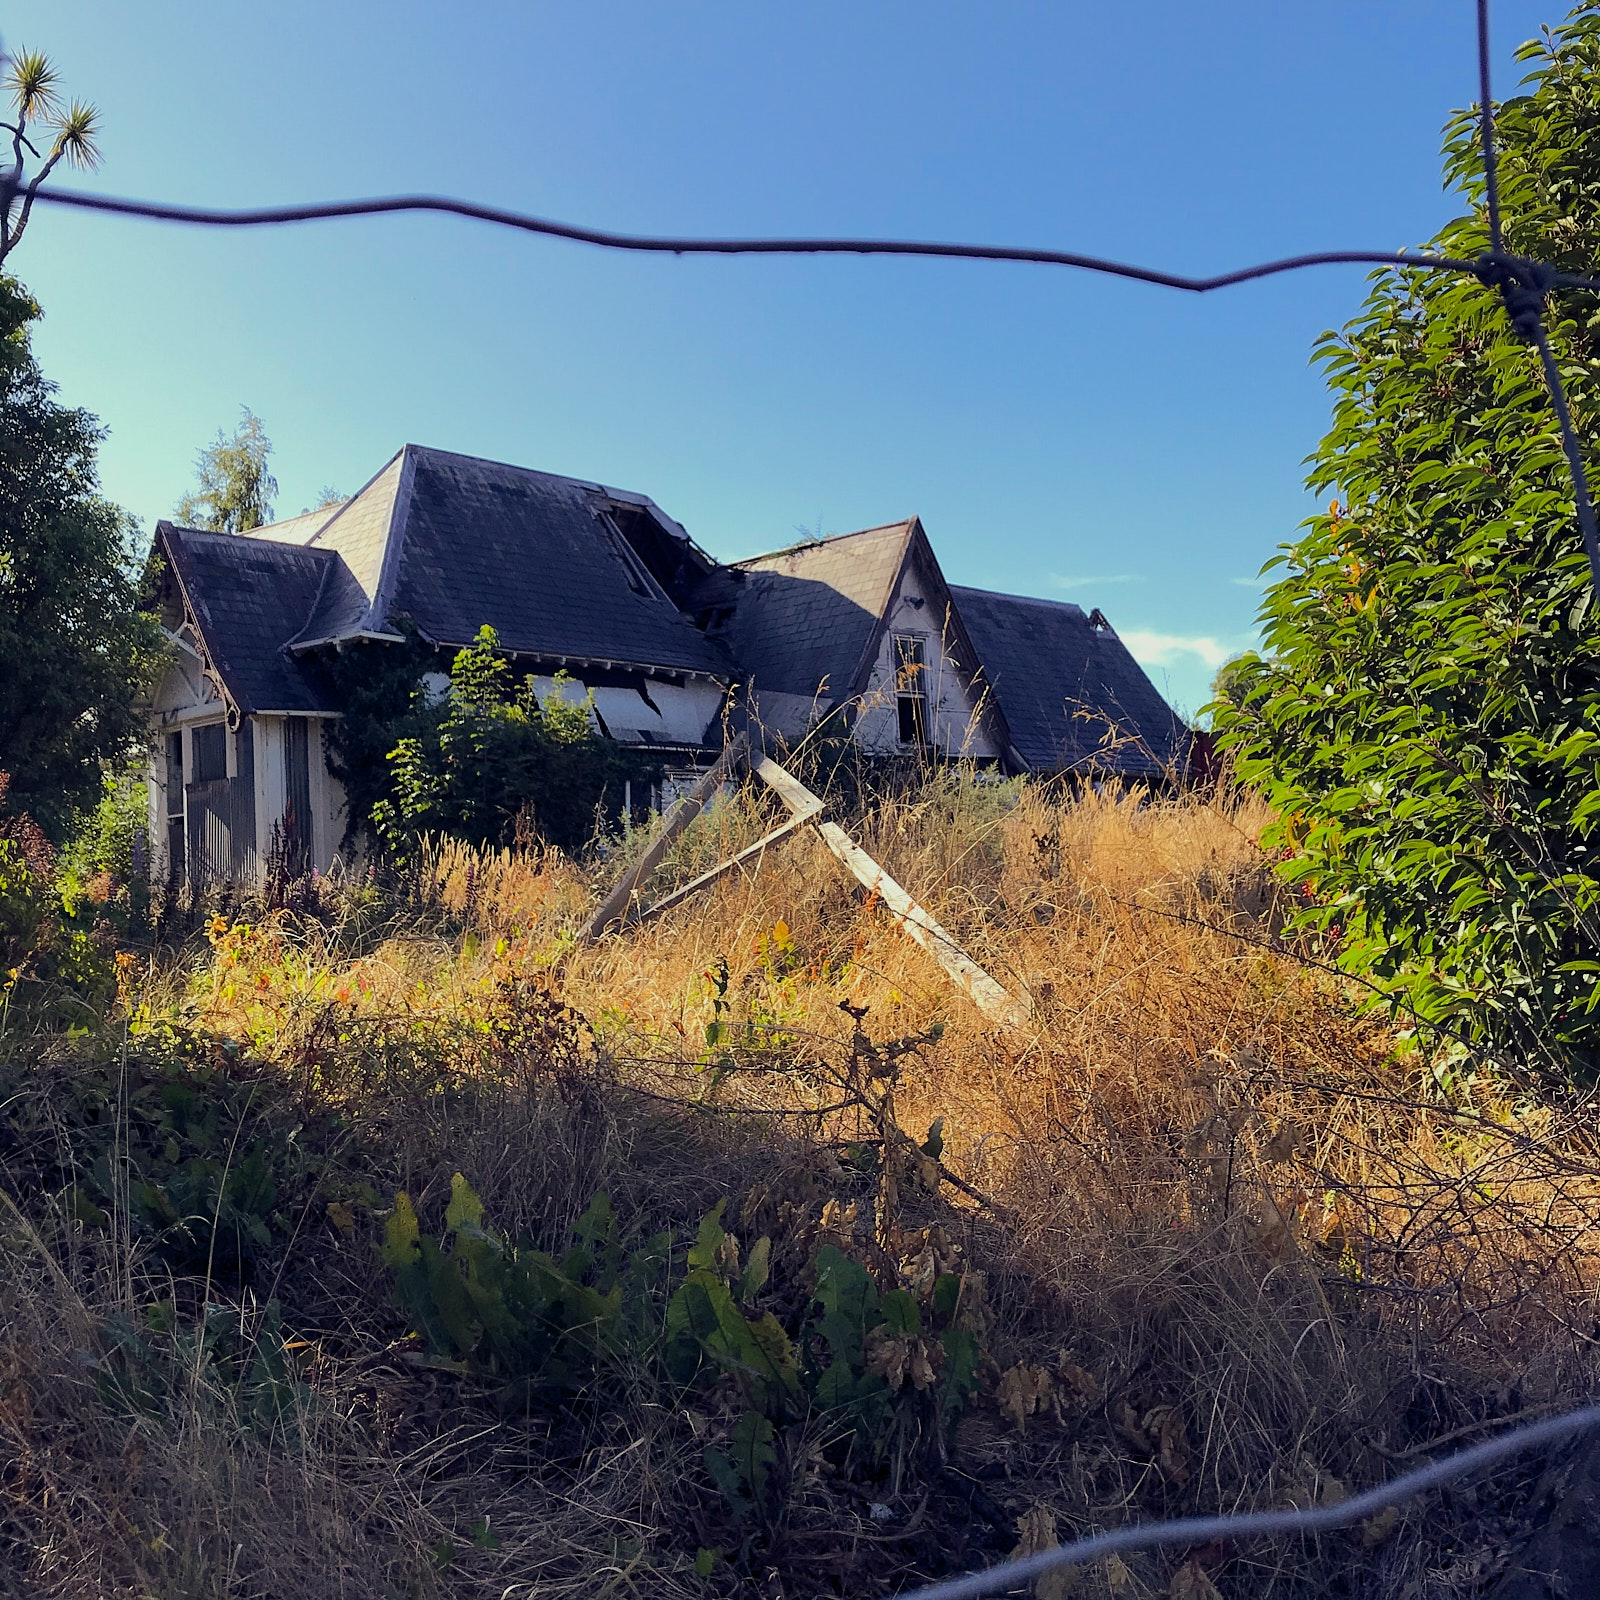 An abandoned house with lots of tall brown grass